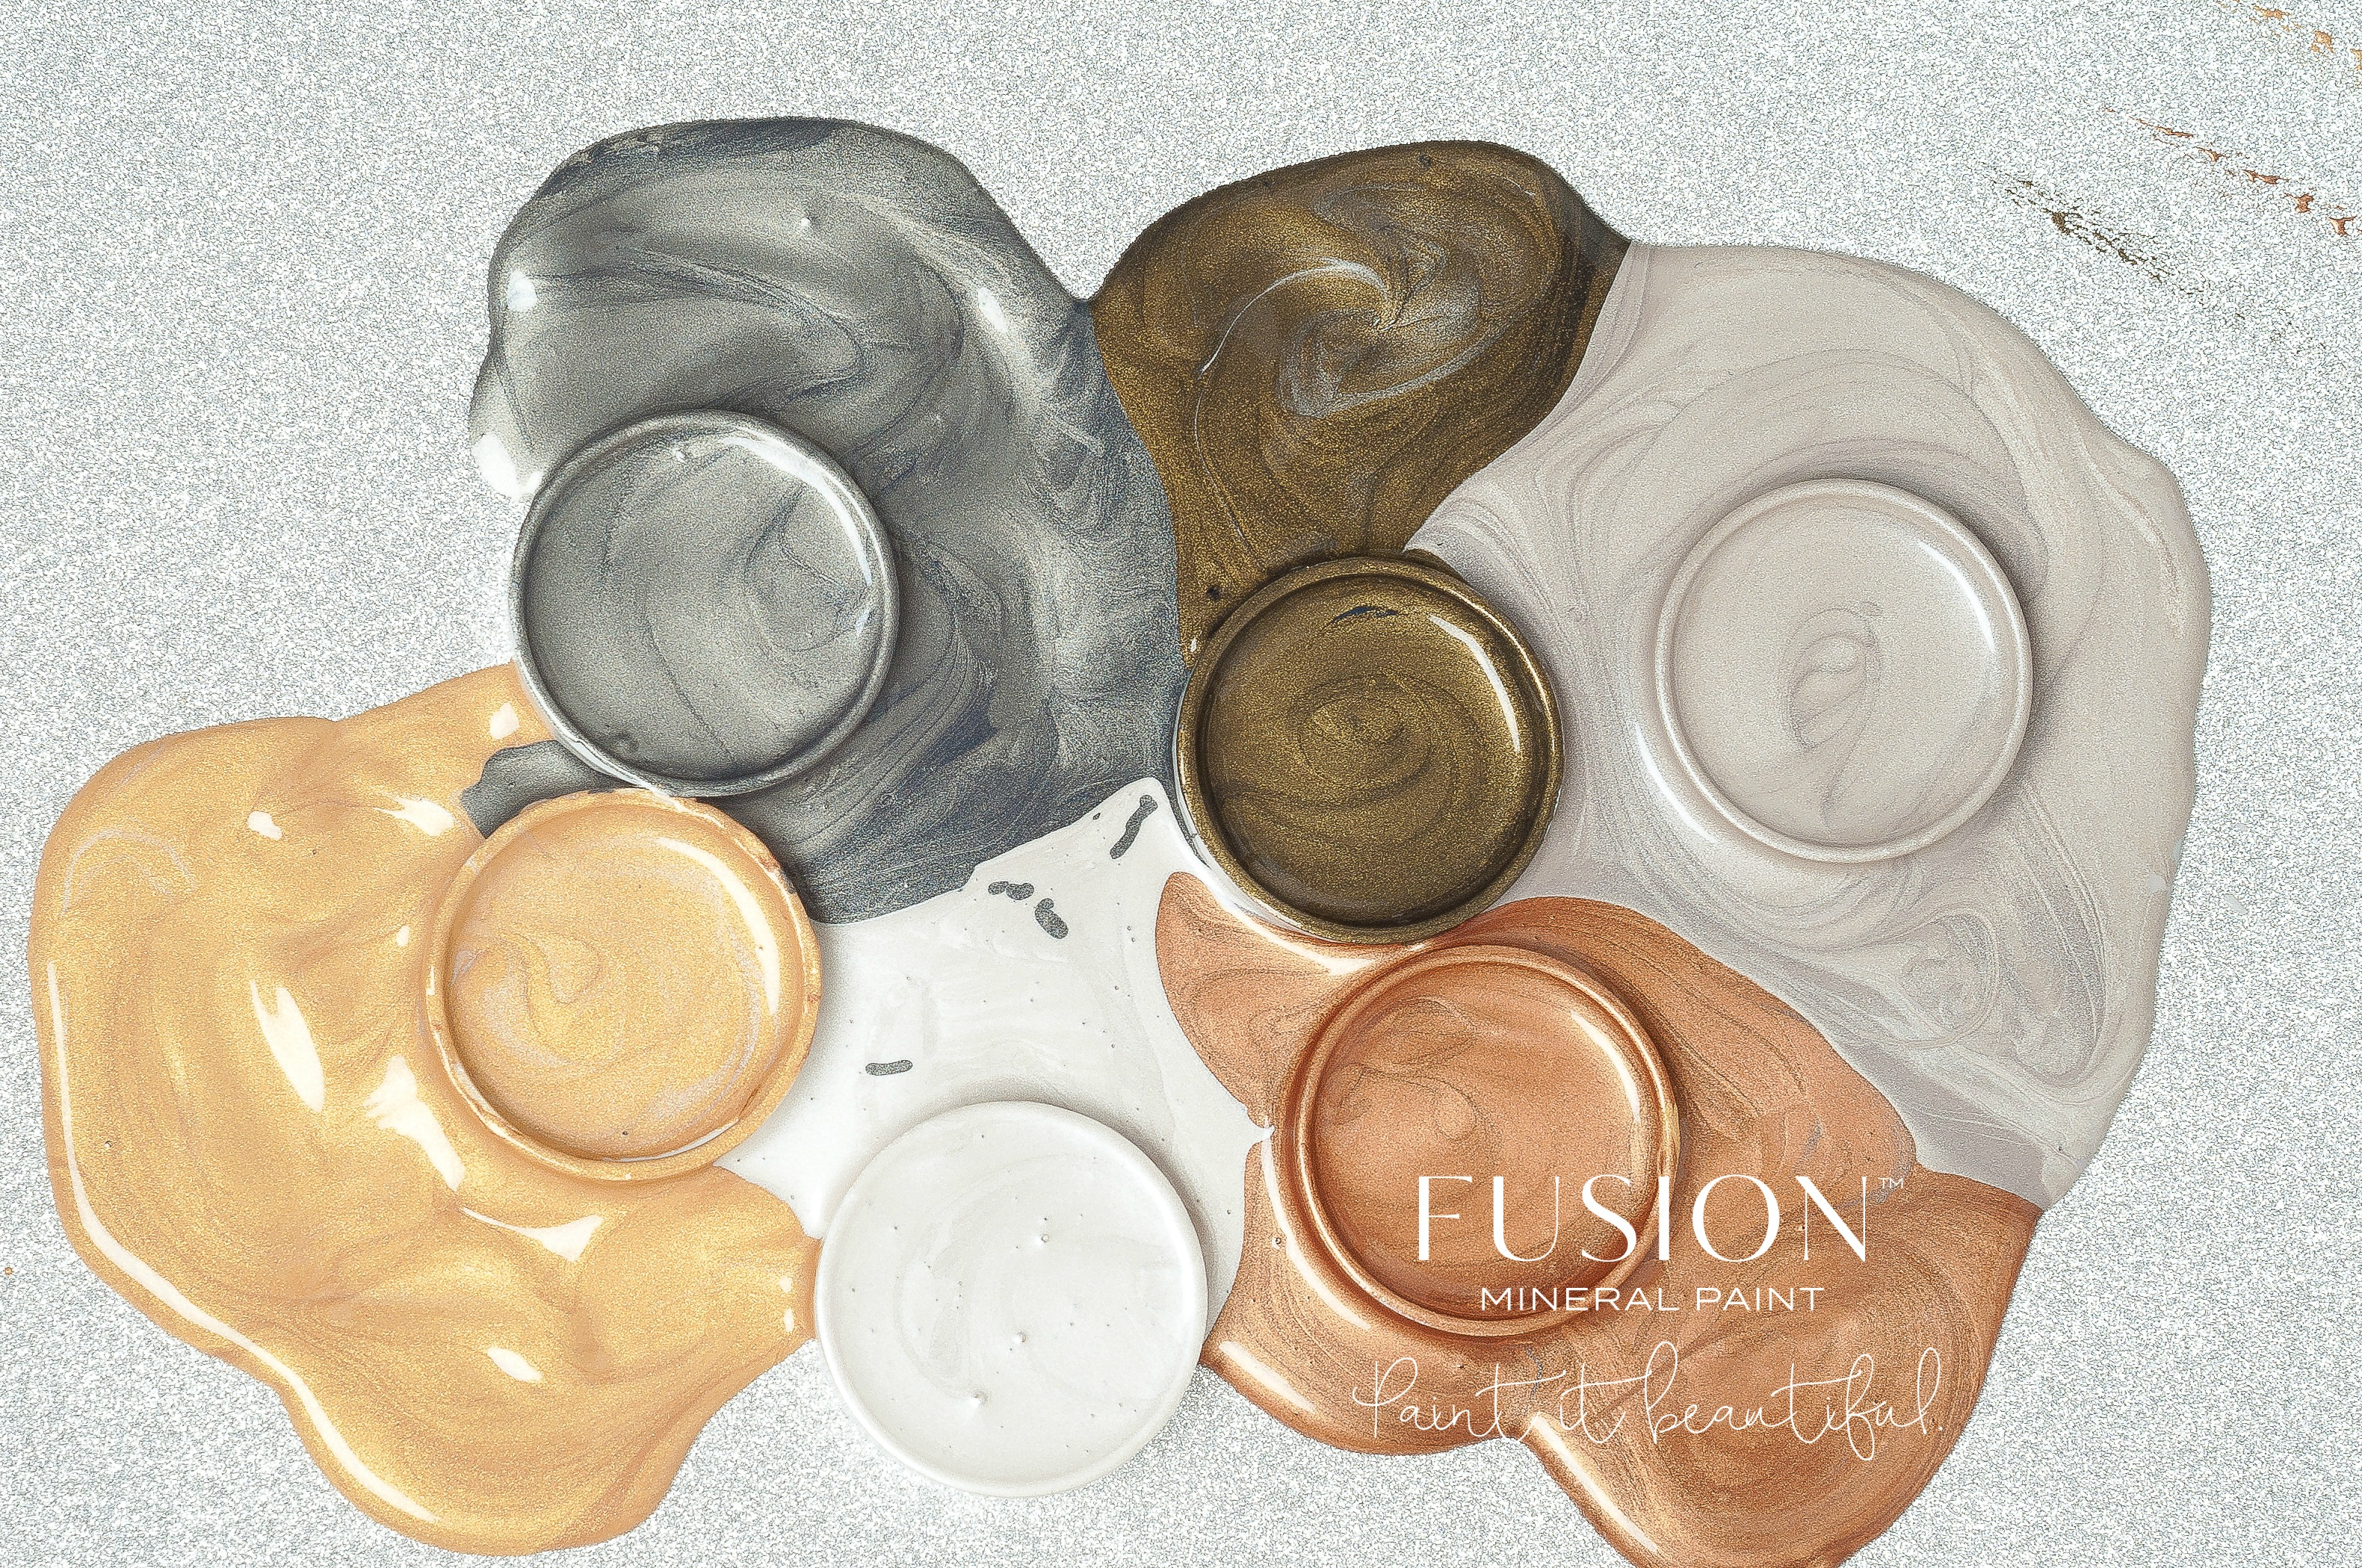 6 Metallic Paint colors to choose from